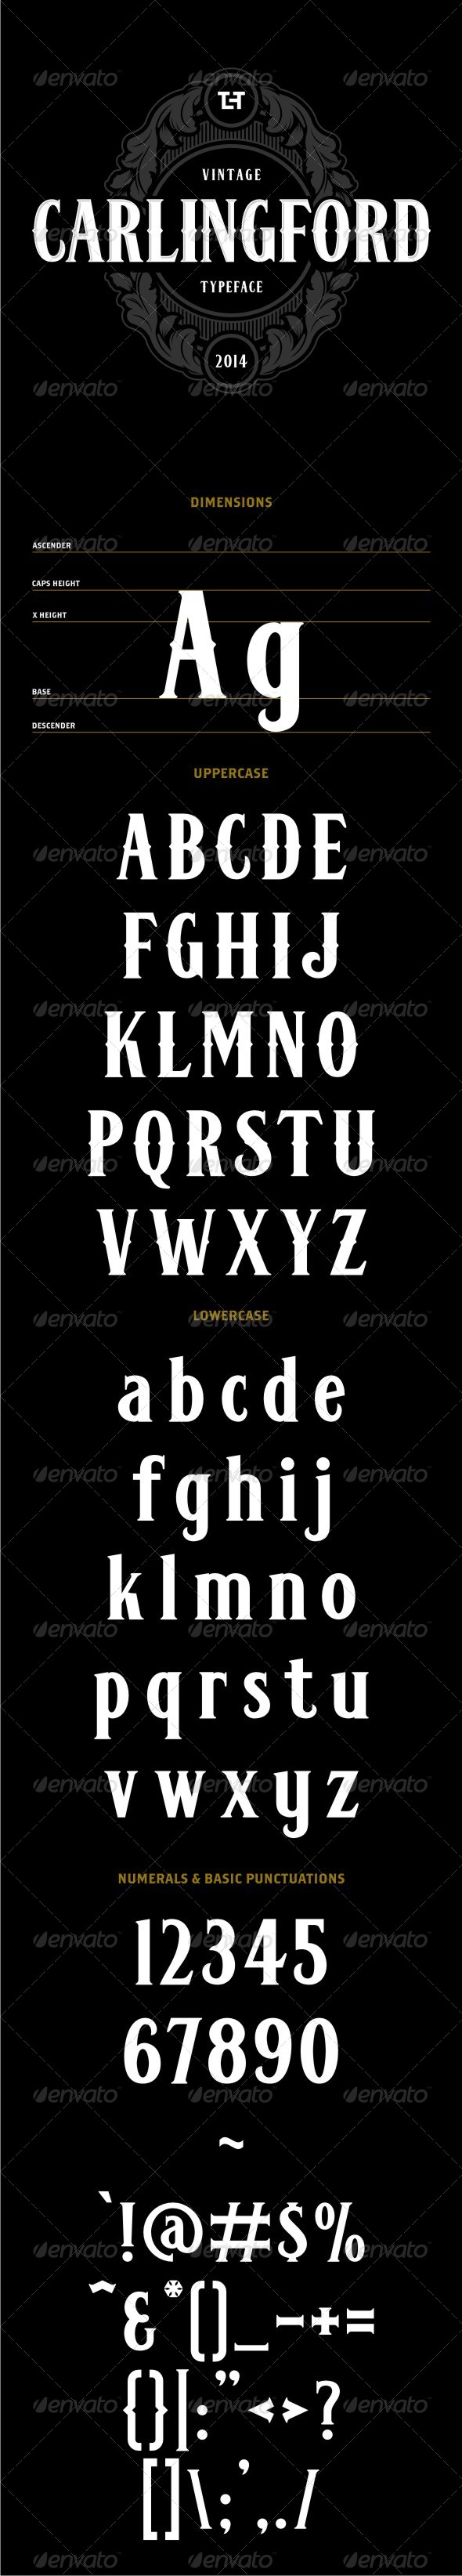 GraphicRiver Carlingford Typeface 7303233